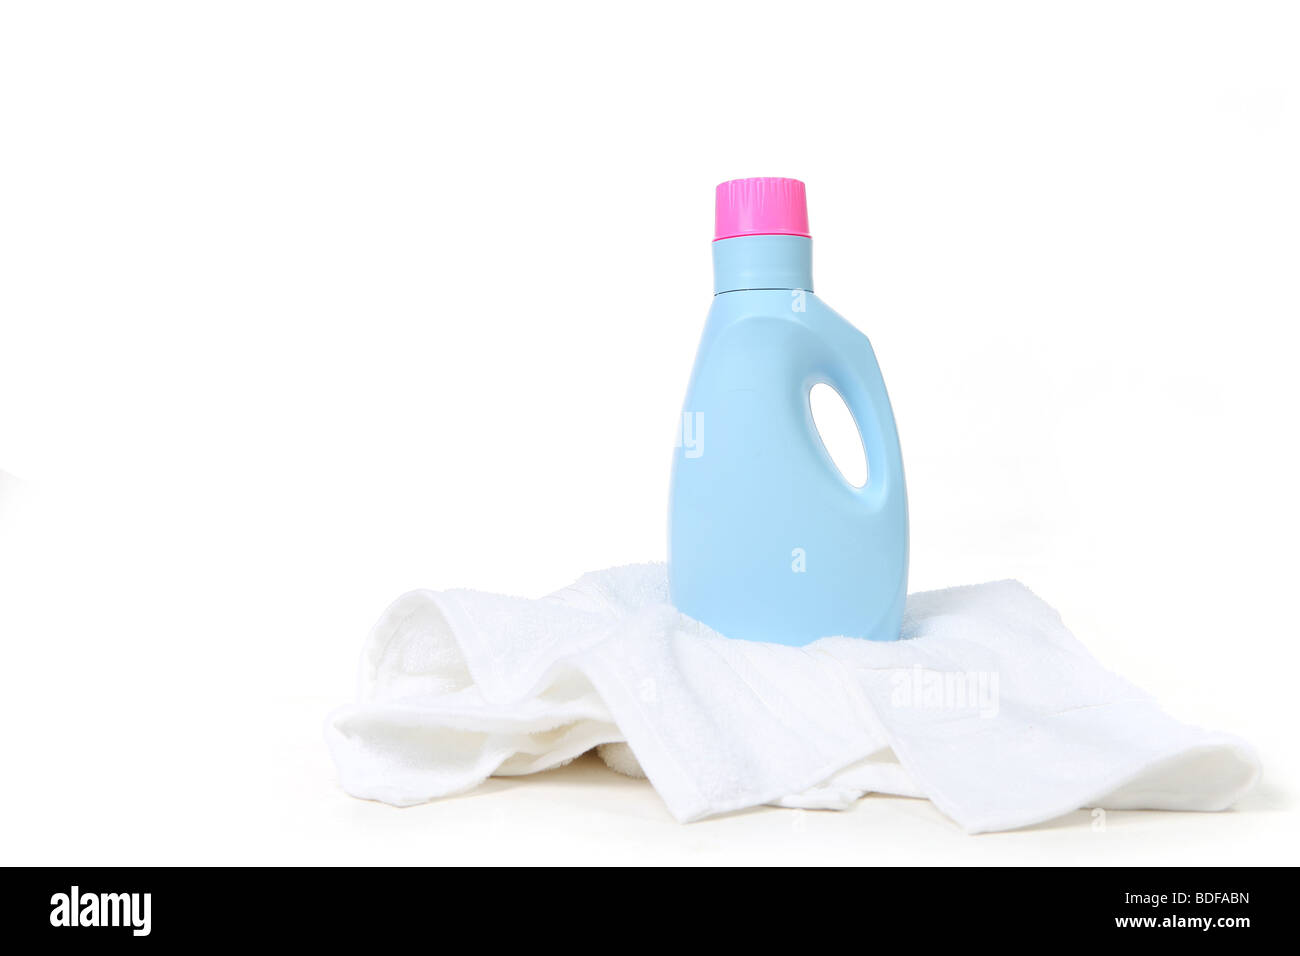 Laundry Detergent On Top of a Towel With Copy Space - Stock Image